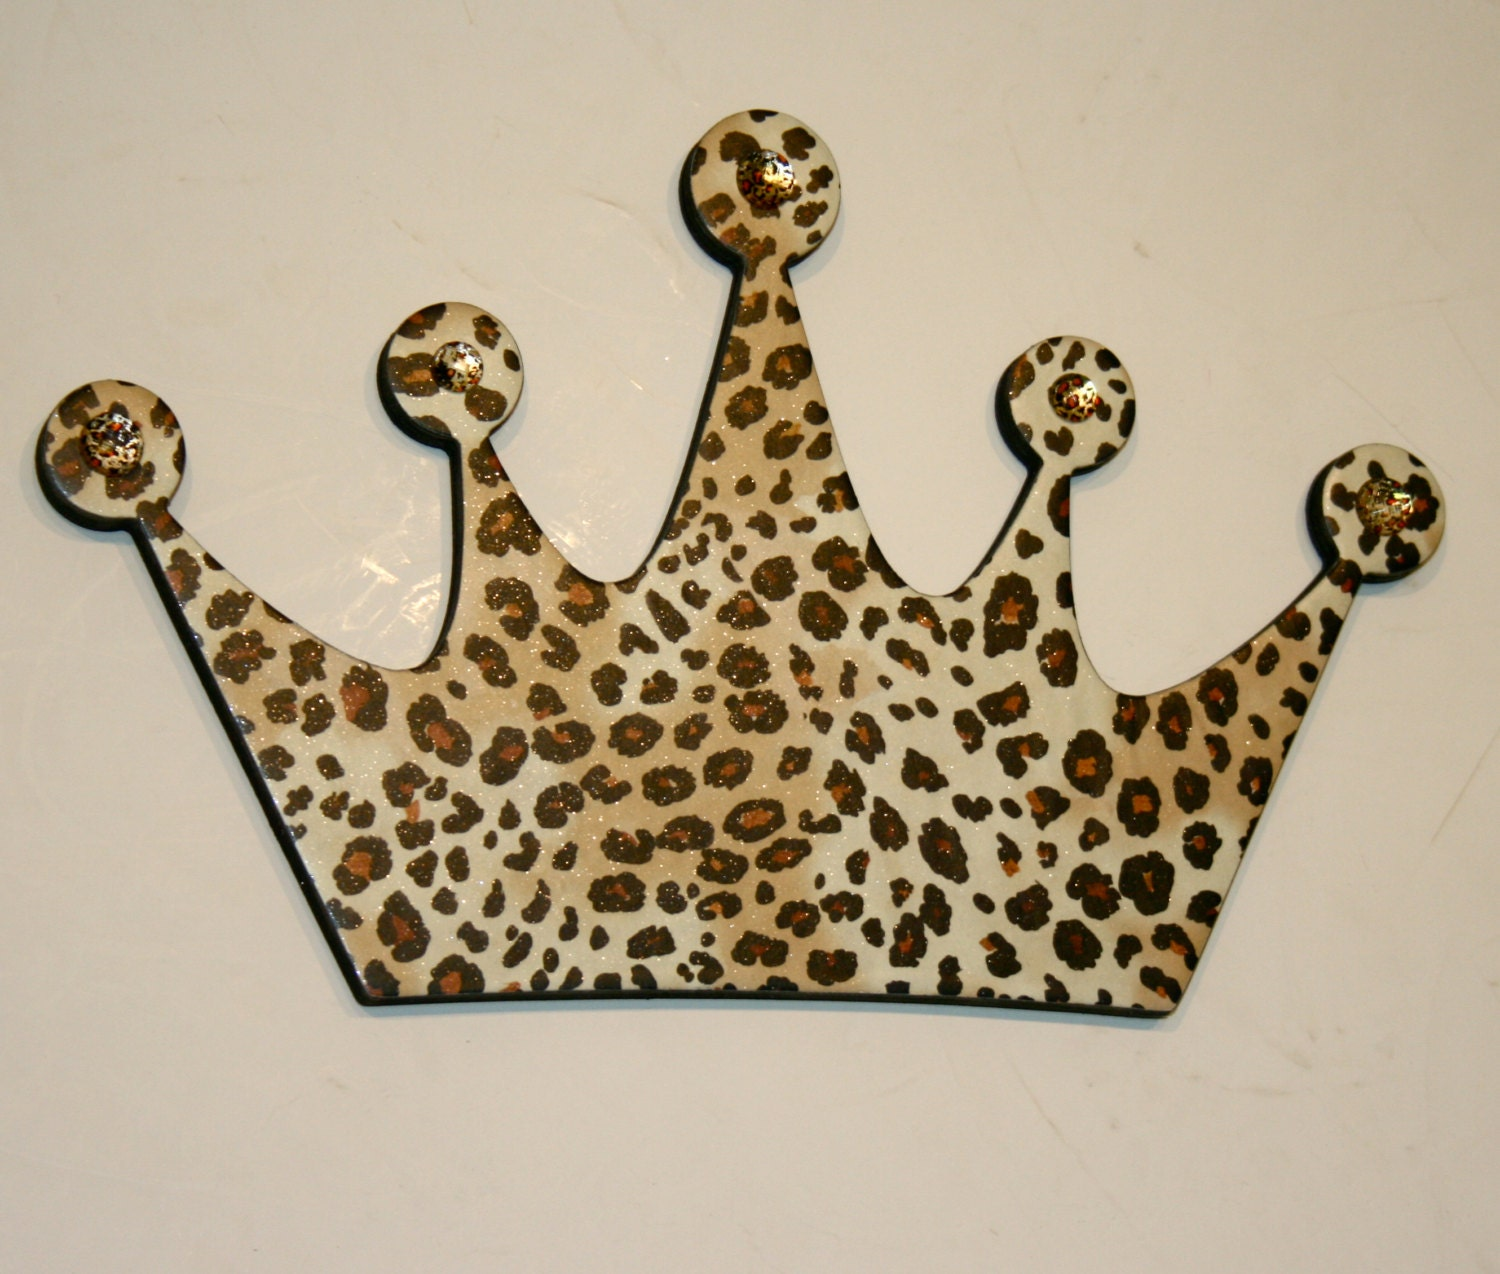 Cheetah Print Decor Leopard Princess Crown Wall Decor Diva Wall Decor Leopard